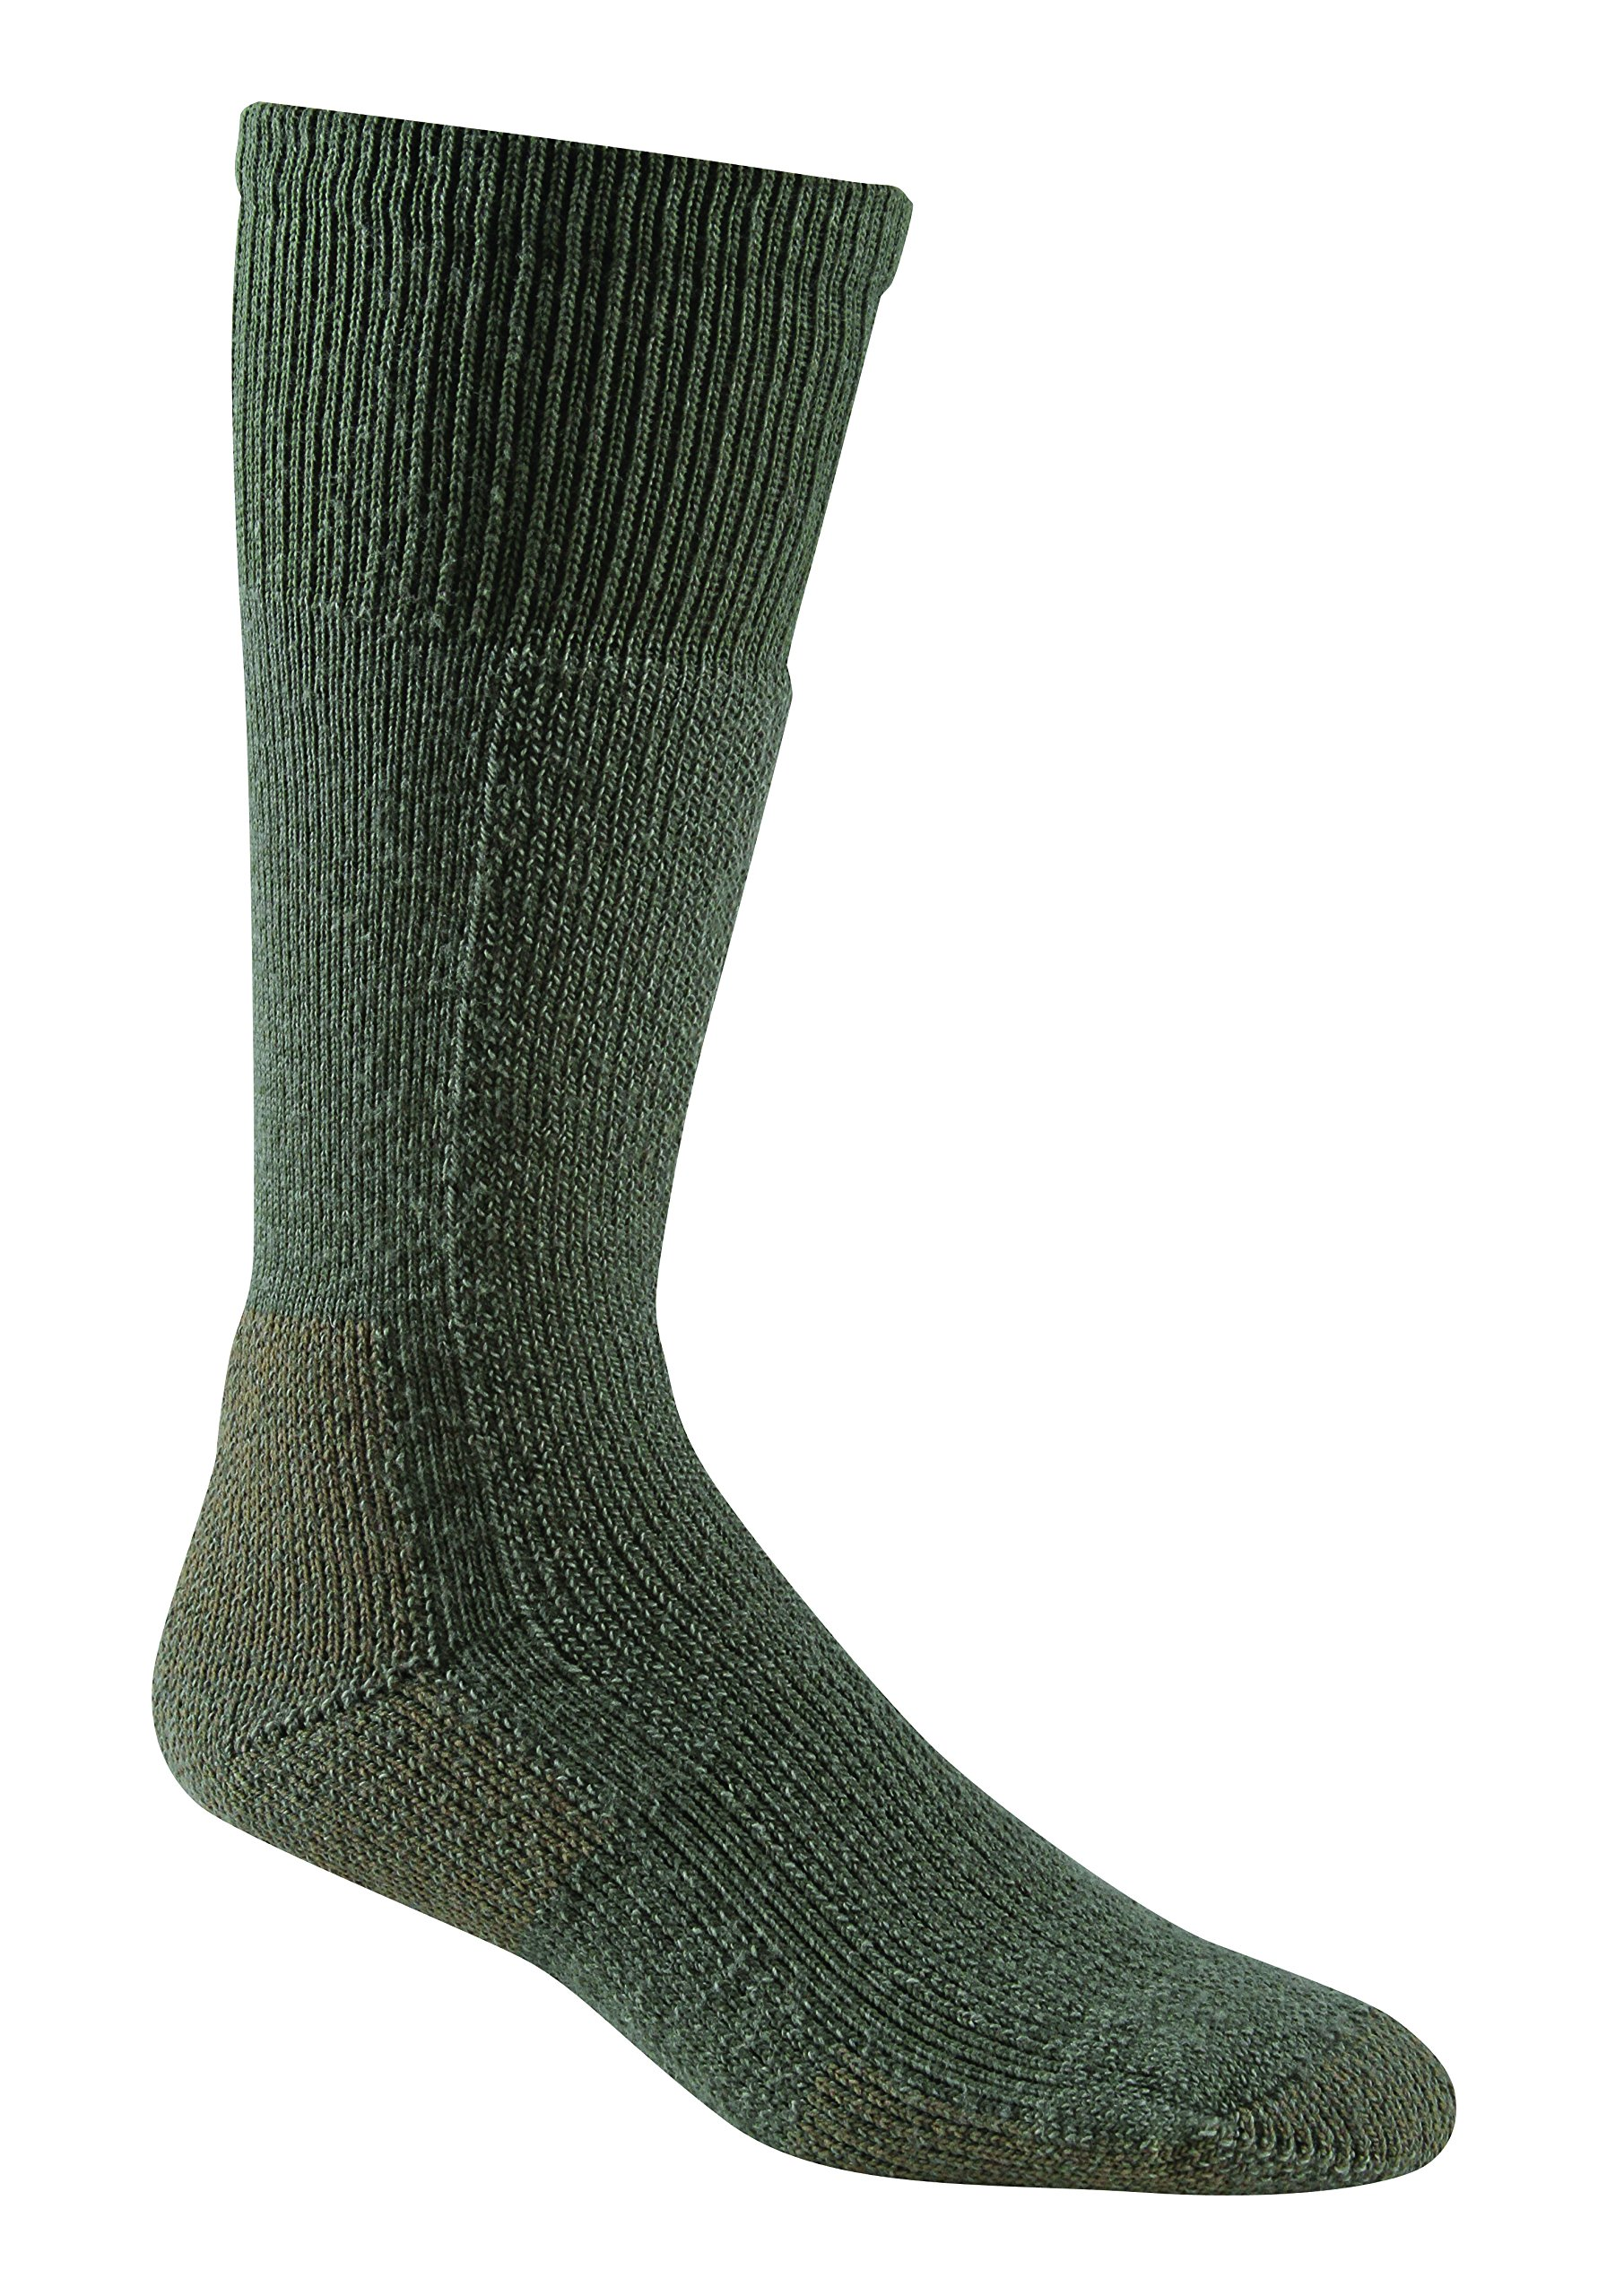 FoxRiver Men's Cold Weather Boot Mid-Calf, Foliage Green, Large